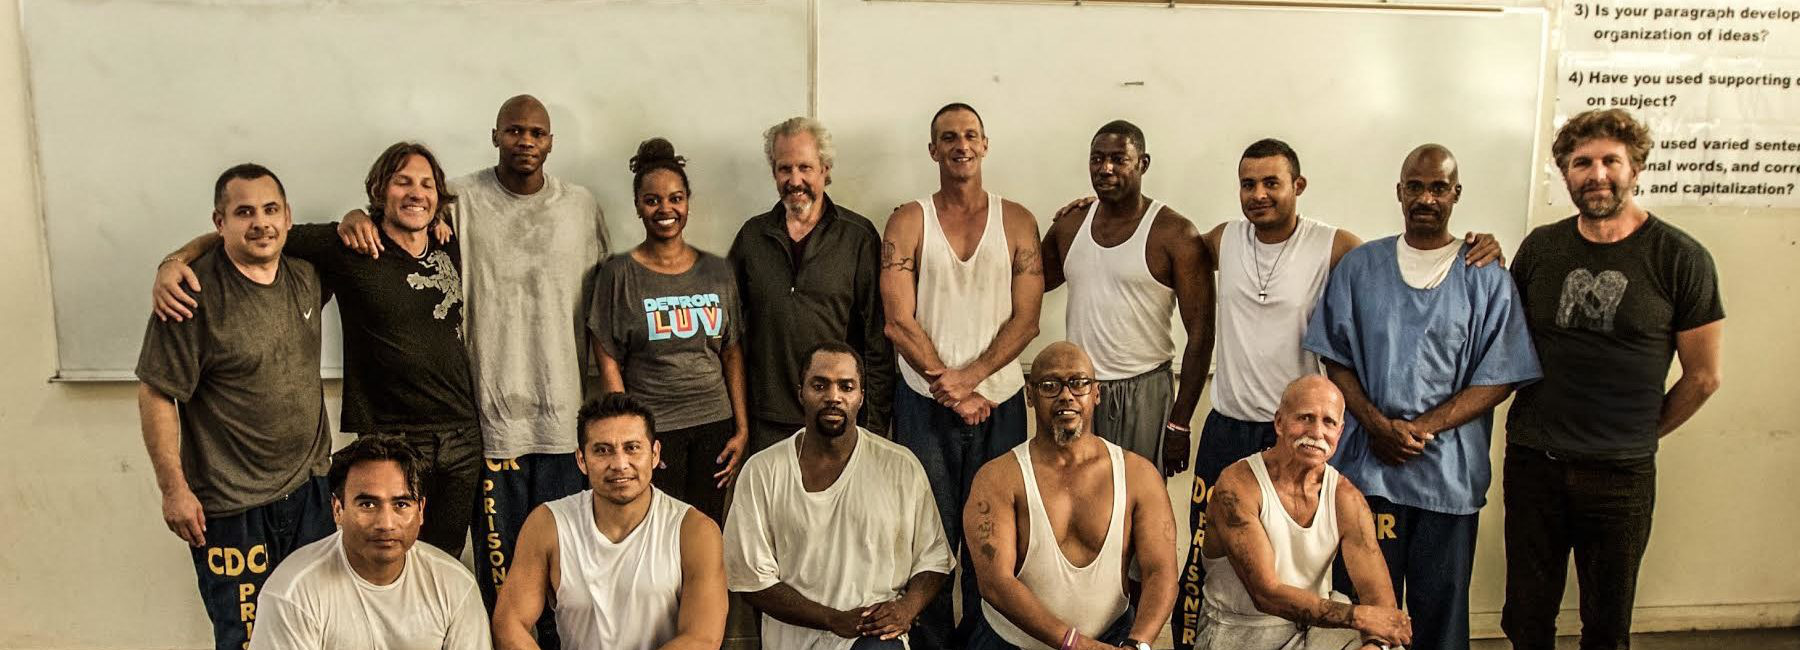 James Fox and the Prison Yoga Project